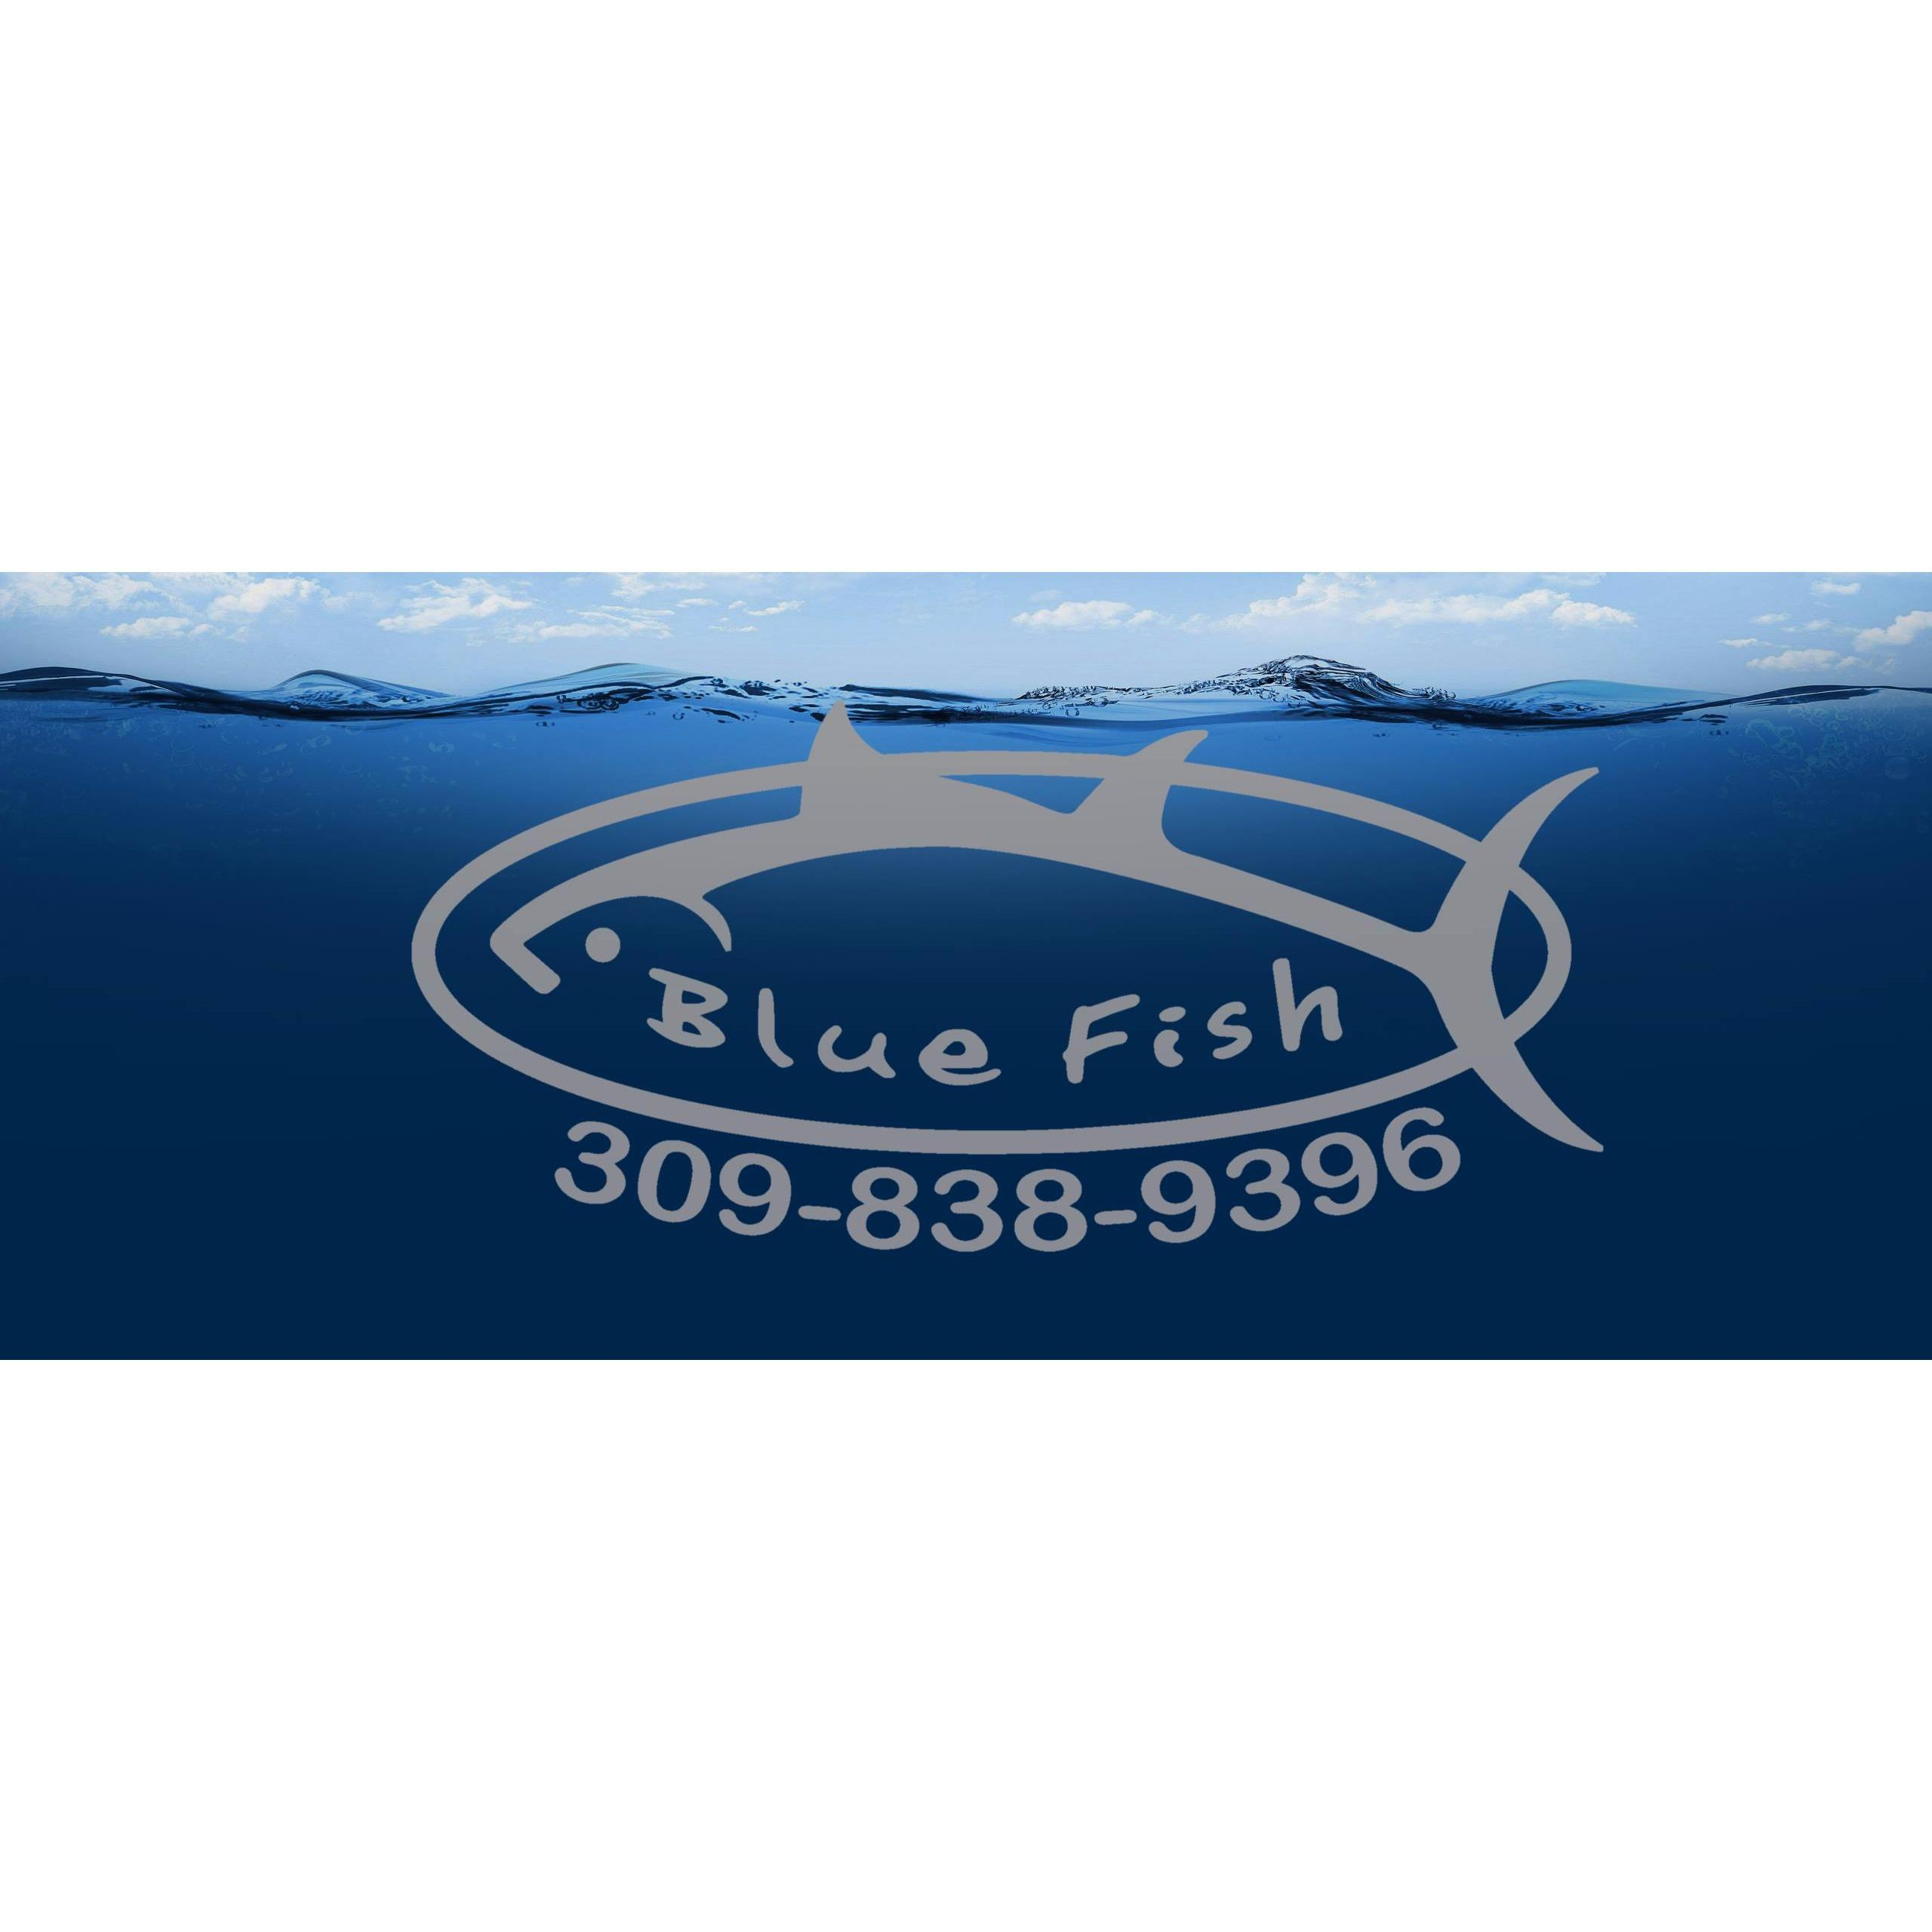 Darren Sheehan, Broker/REALTOR® with Coldwell Banker TRG & Owner of Blue Fish Estate Sales